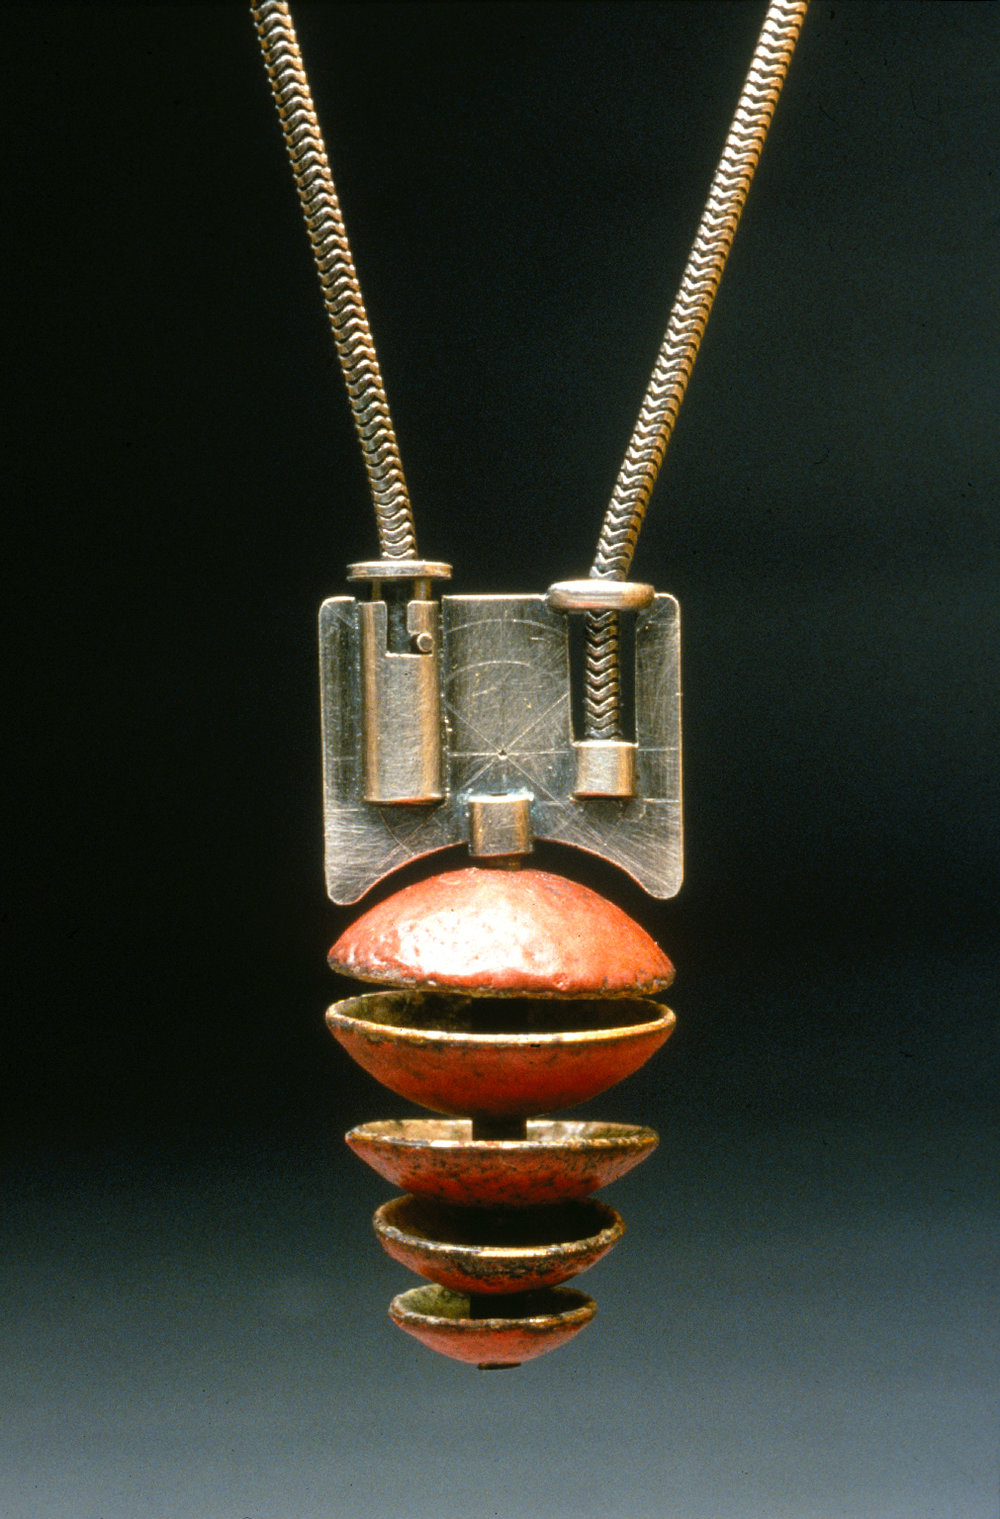 Receptor Necklace